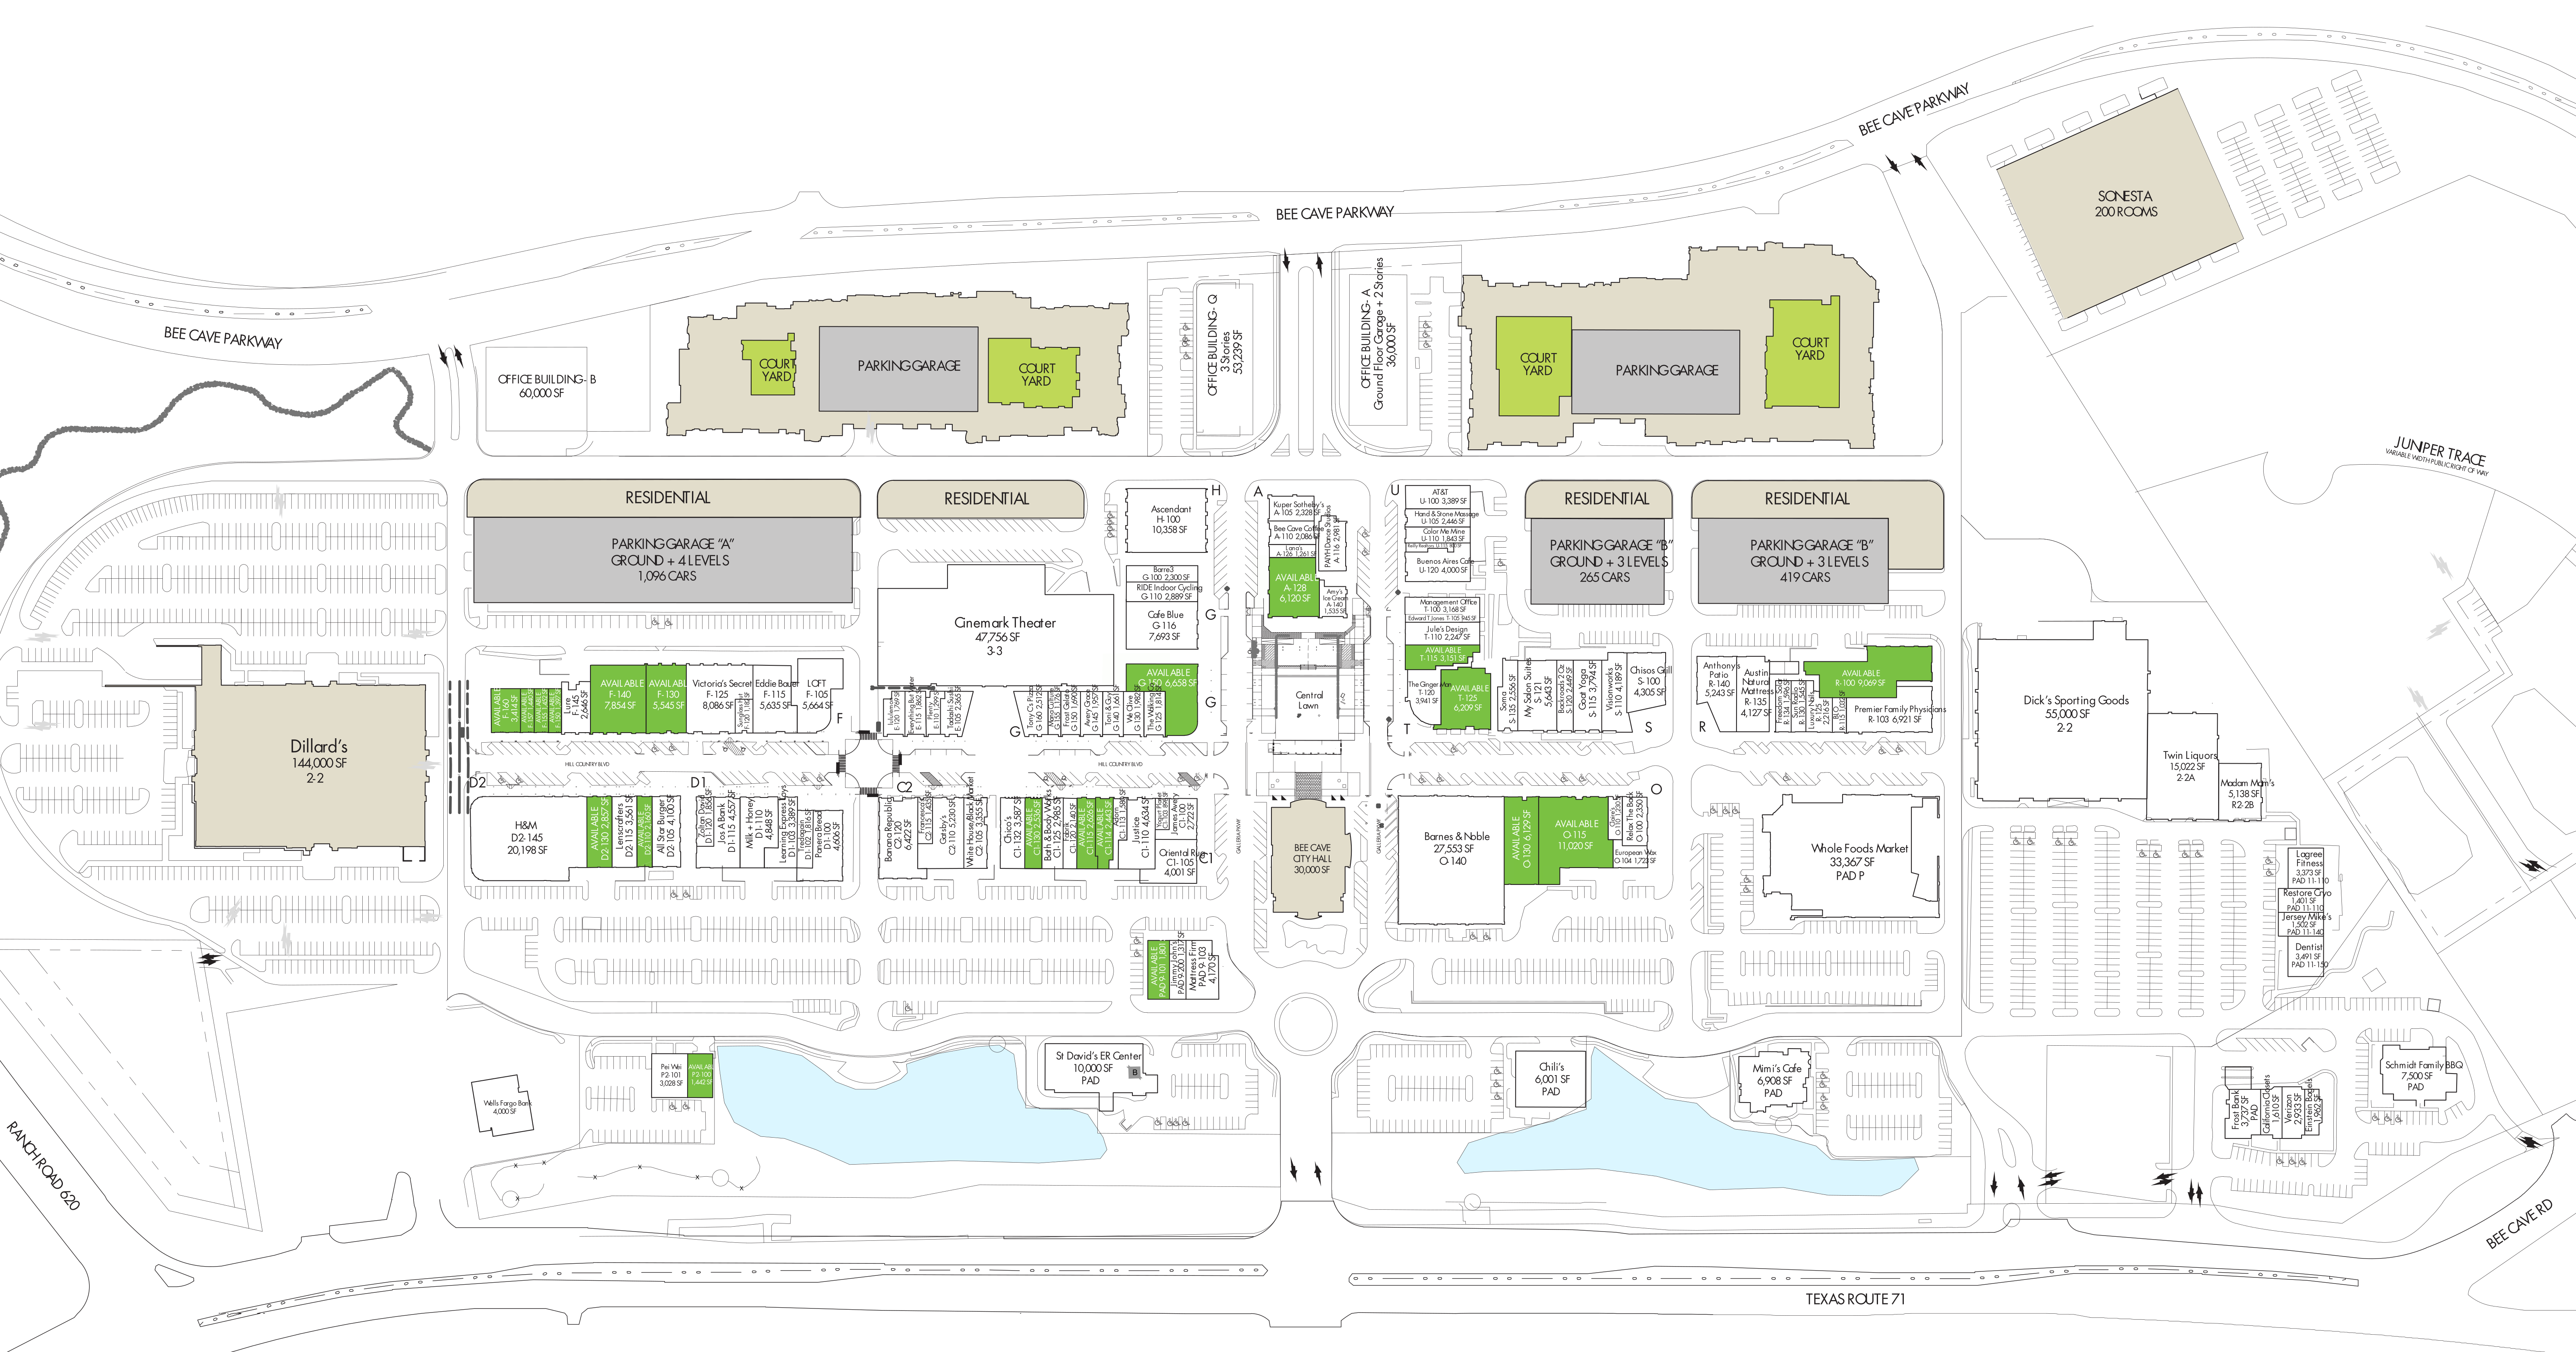 Hill Country Galleria: site plan